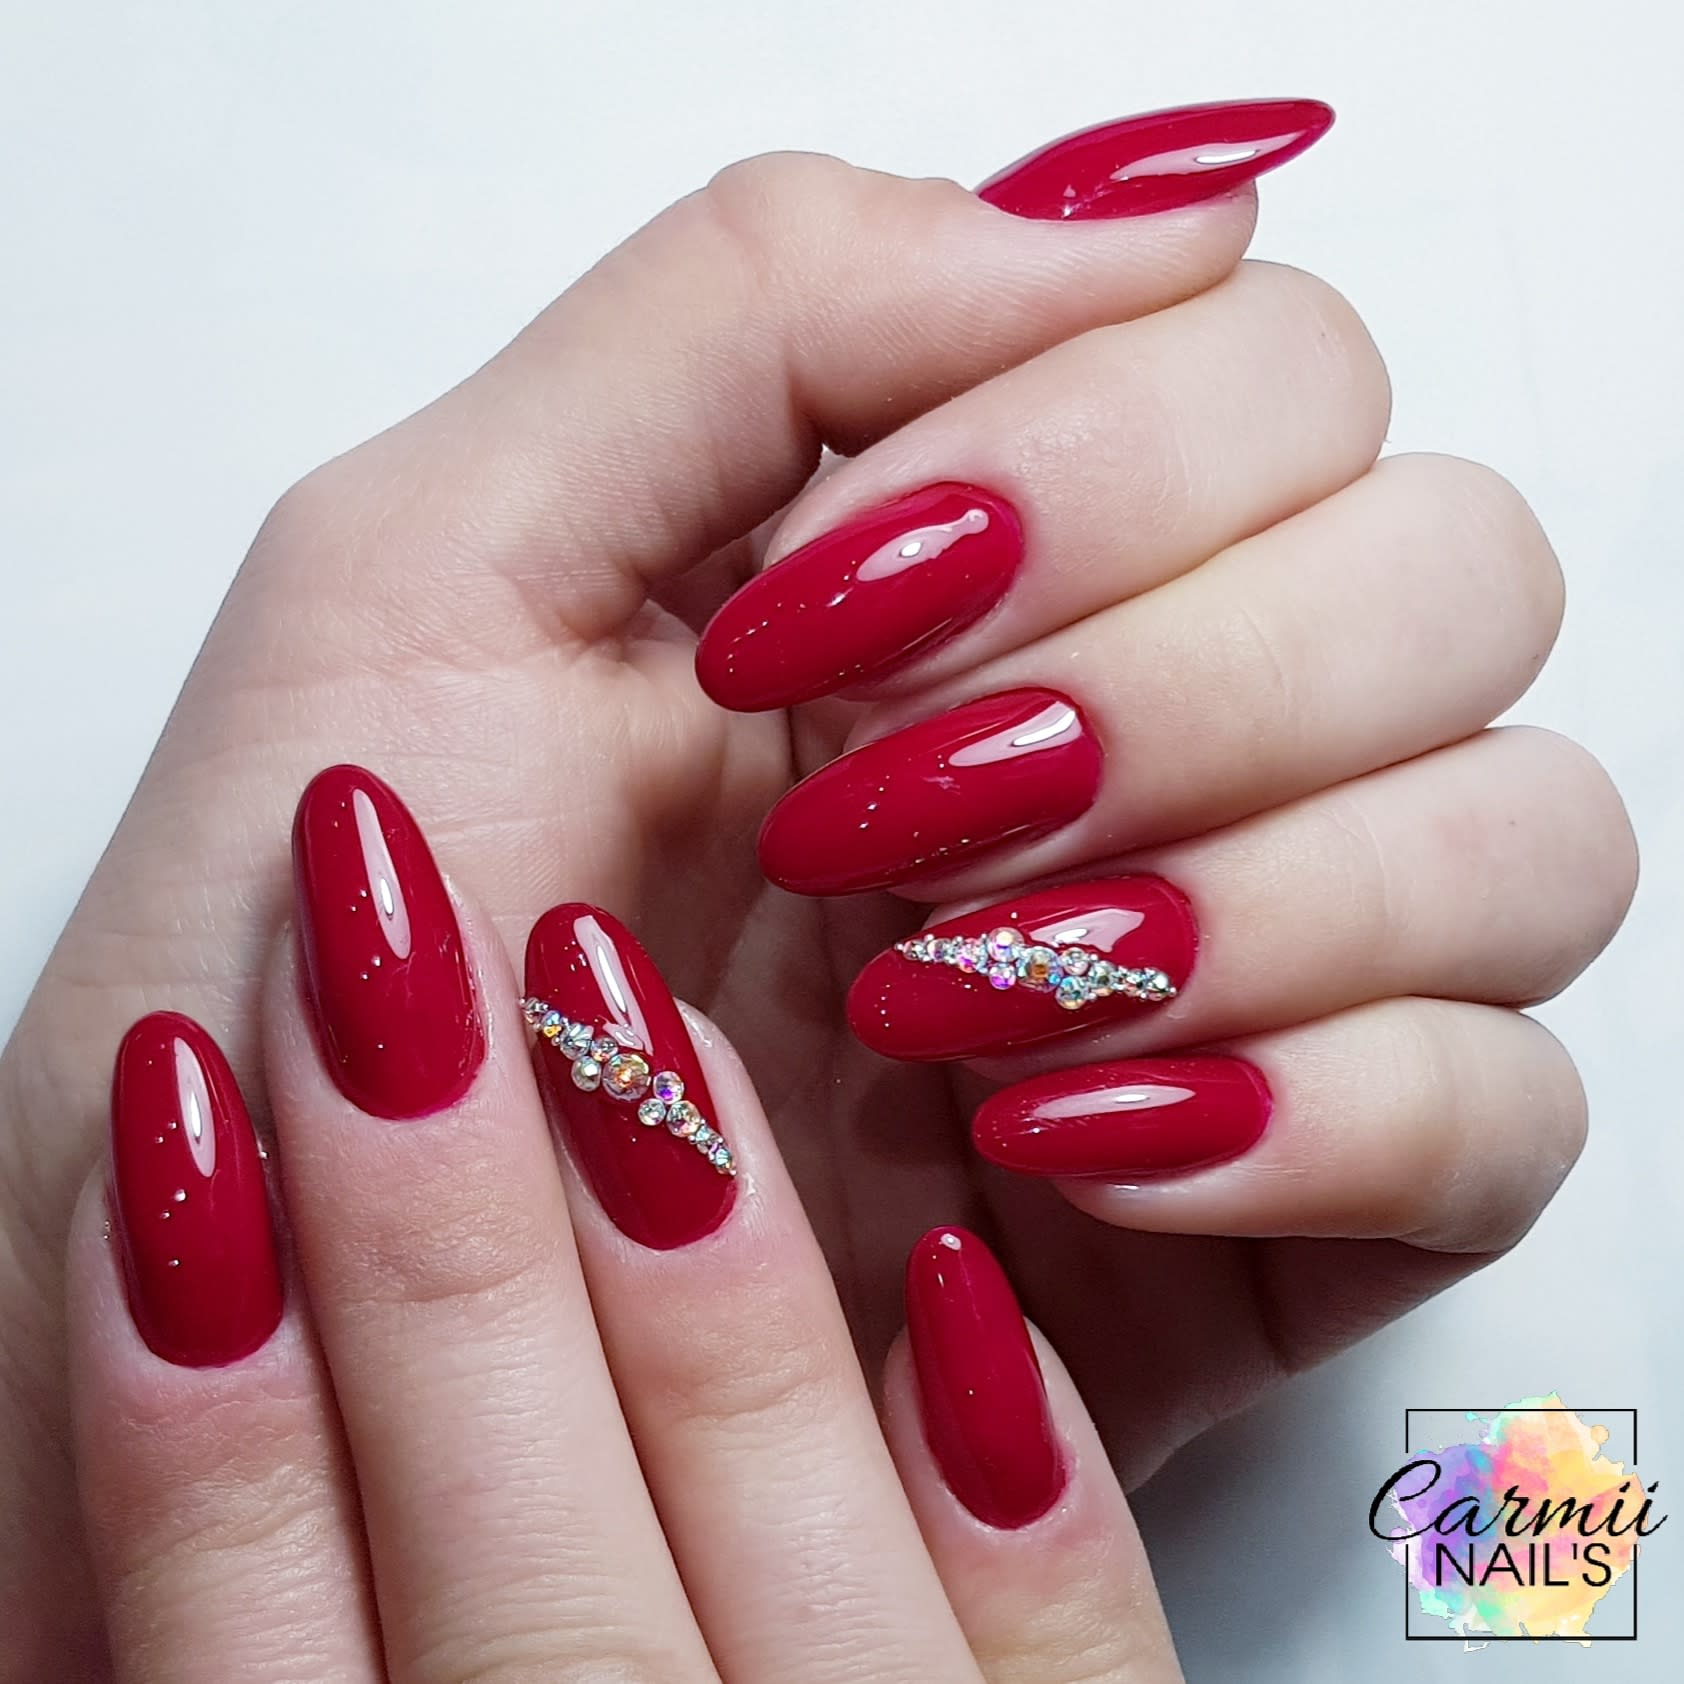 Carmii Nails Barrow